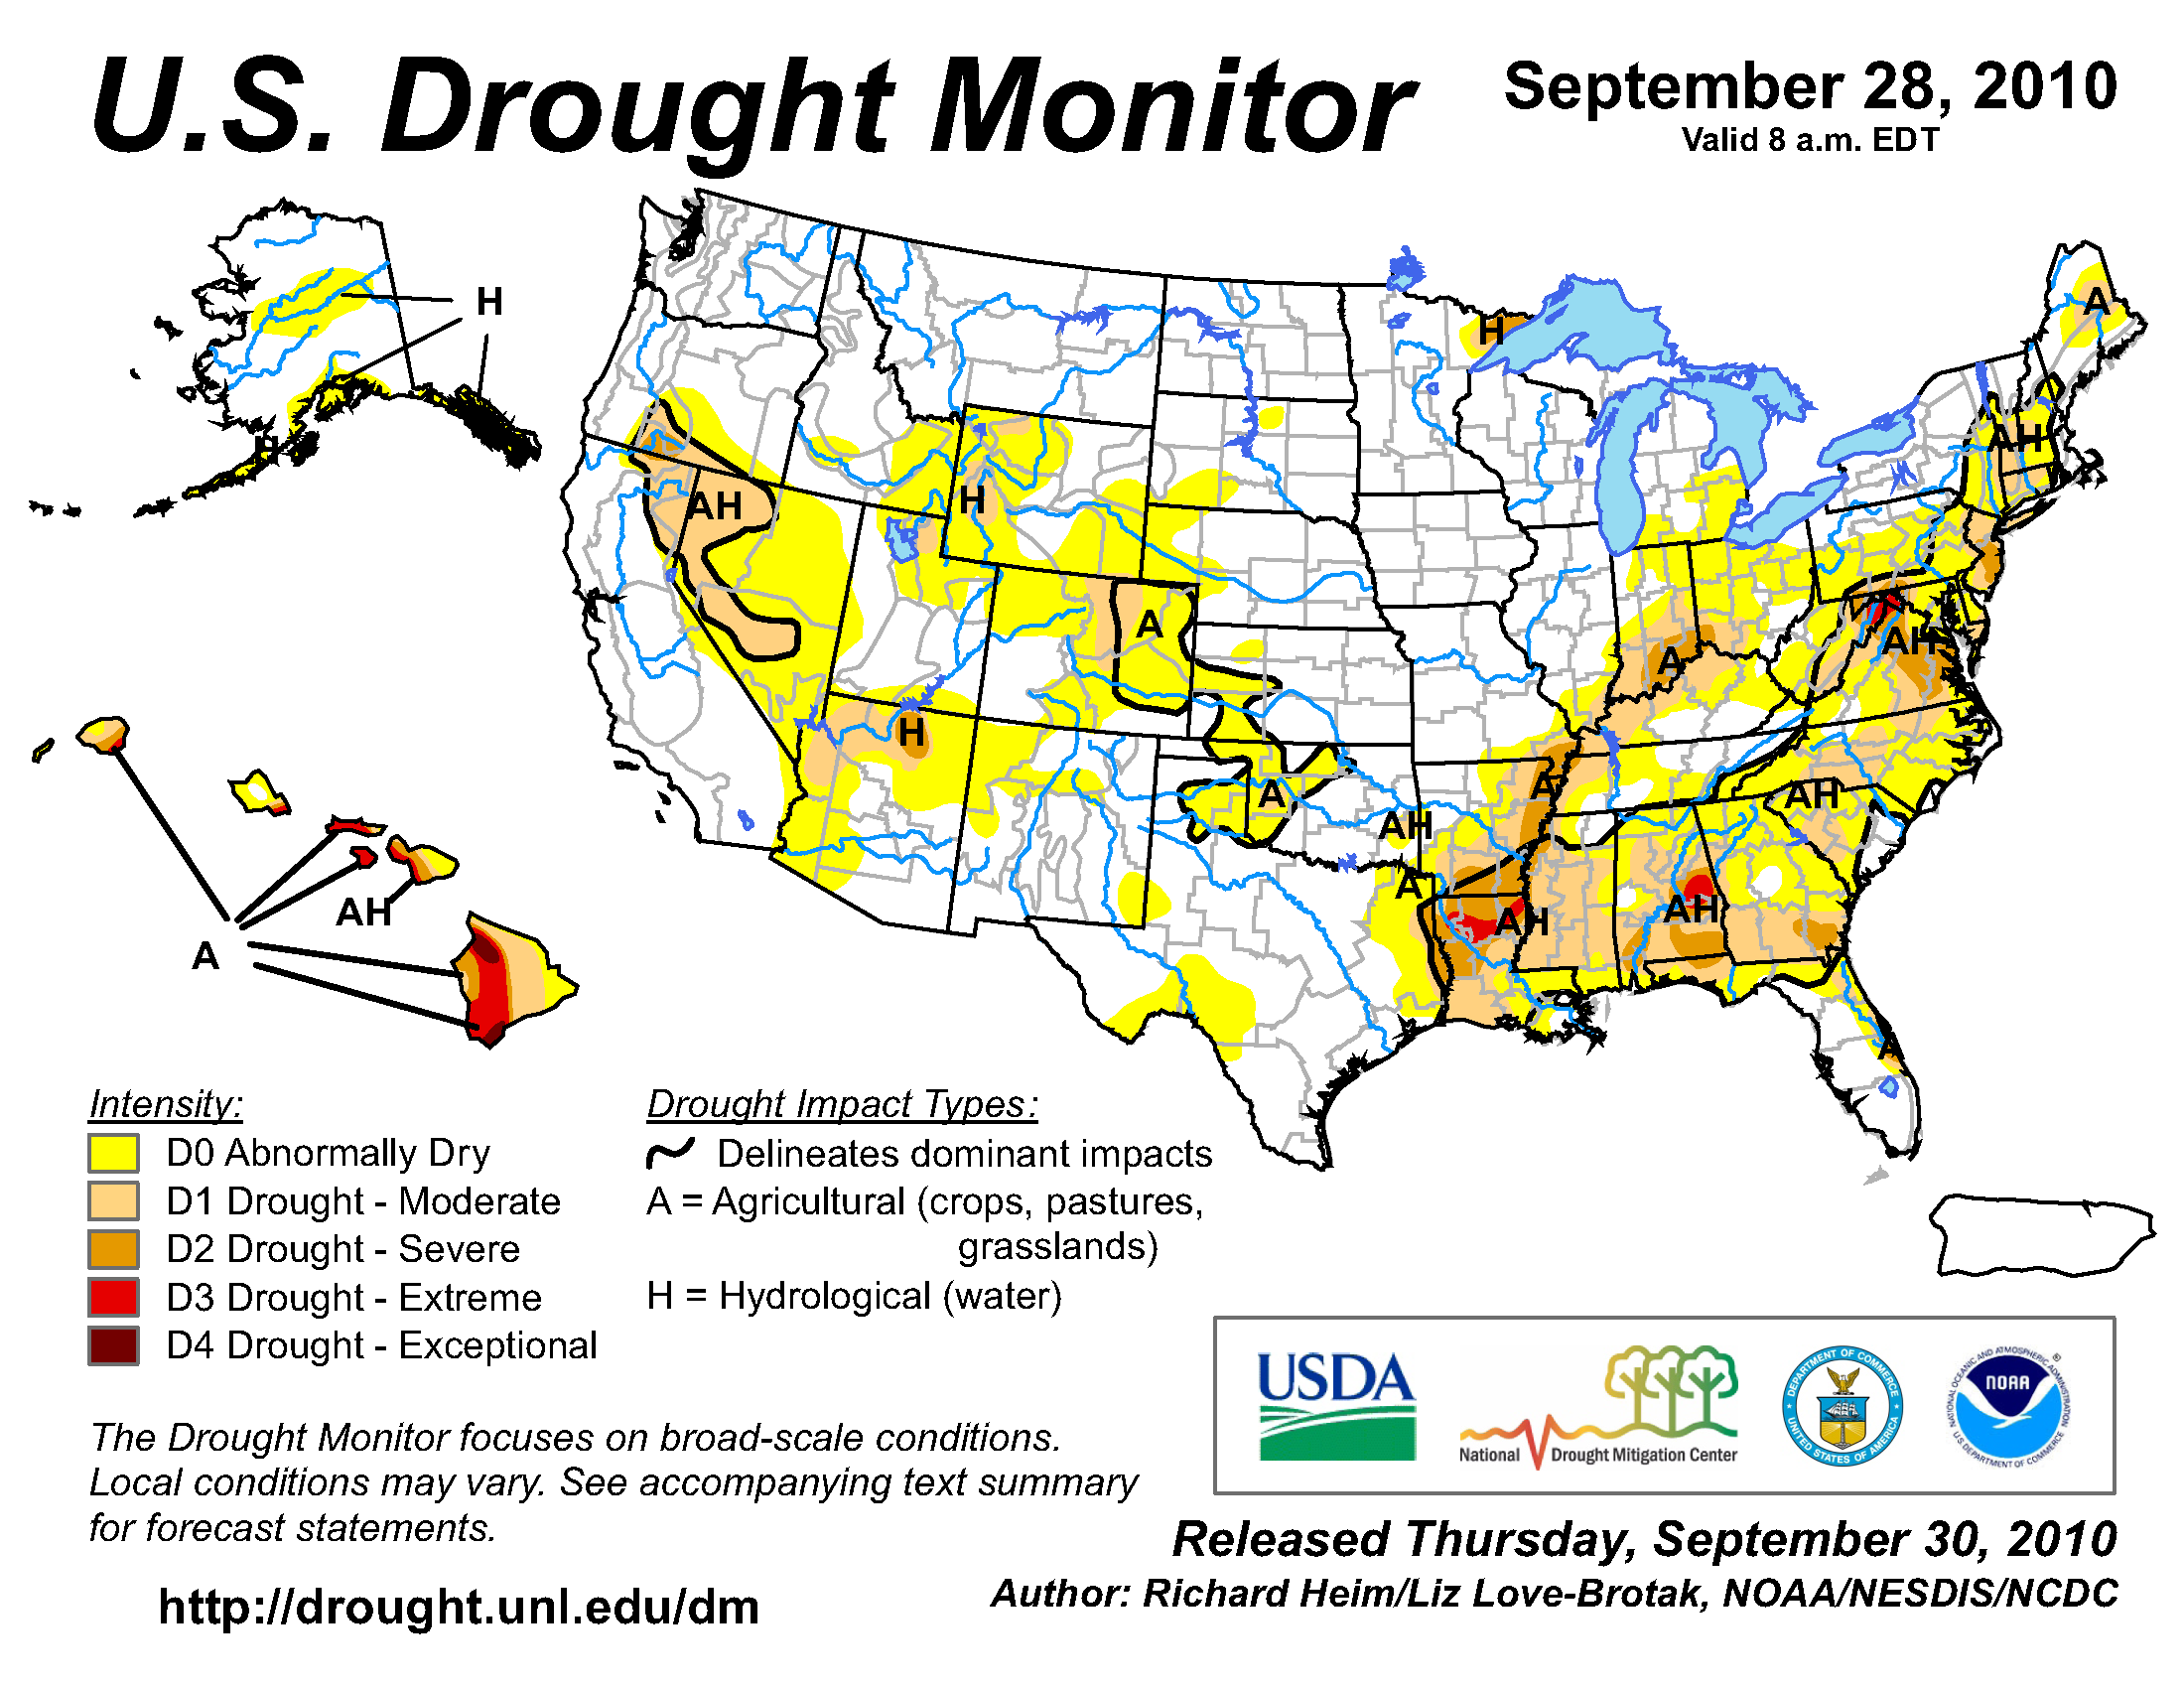 U.S. Drought Monitor map from 28 September 2010